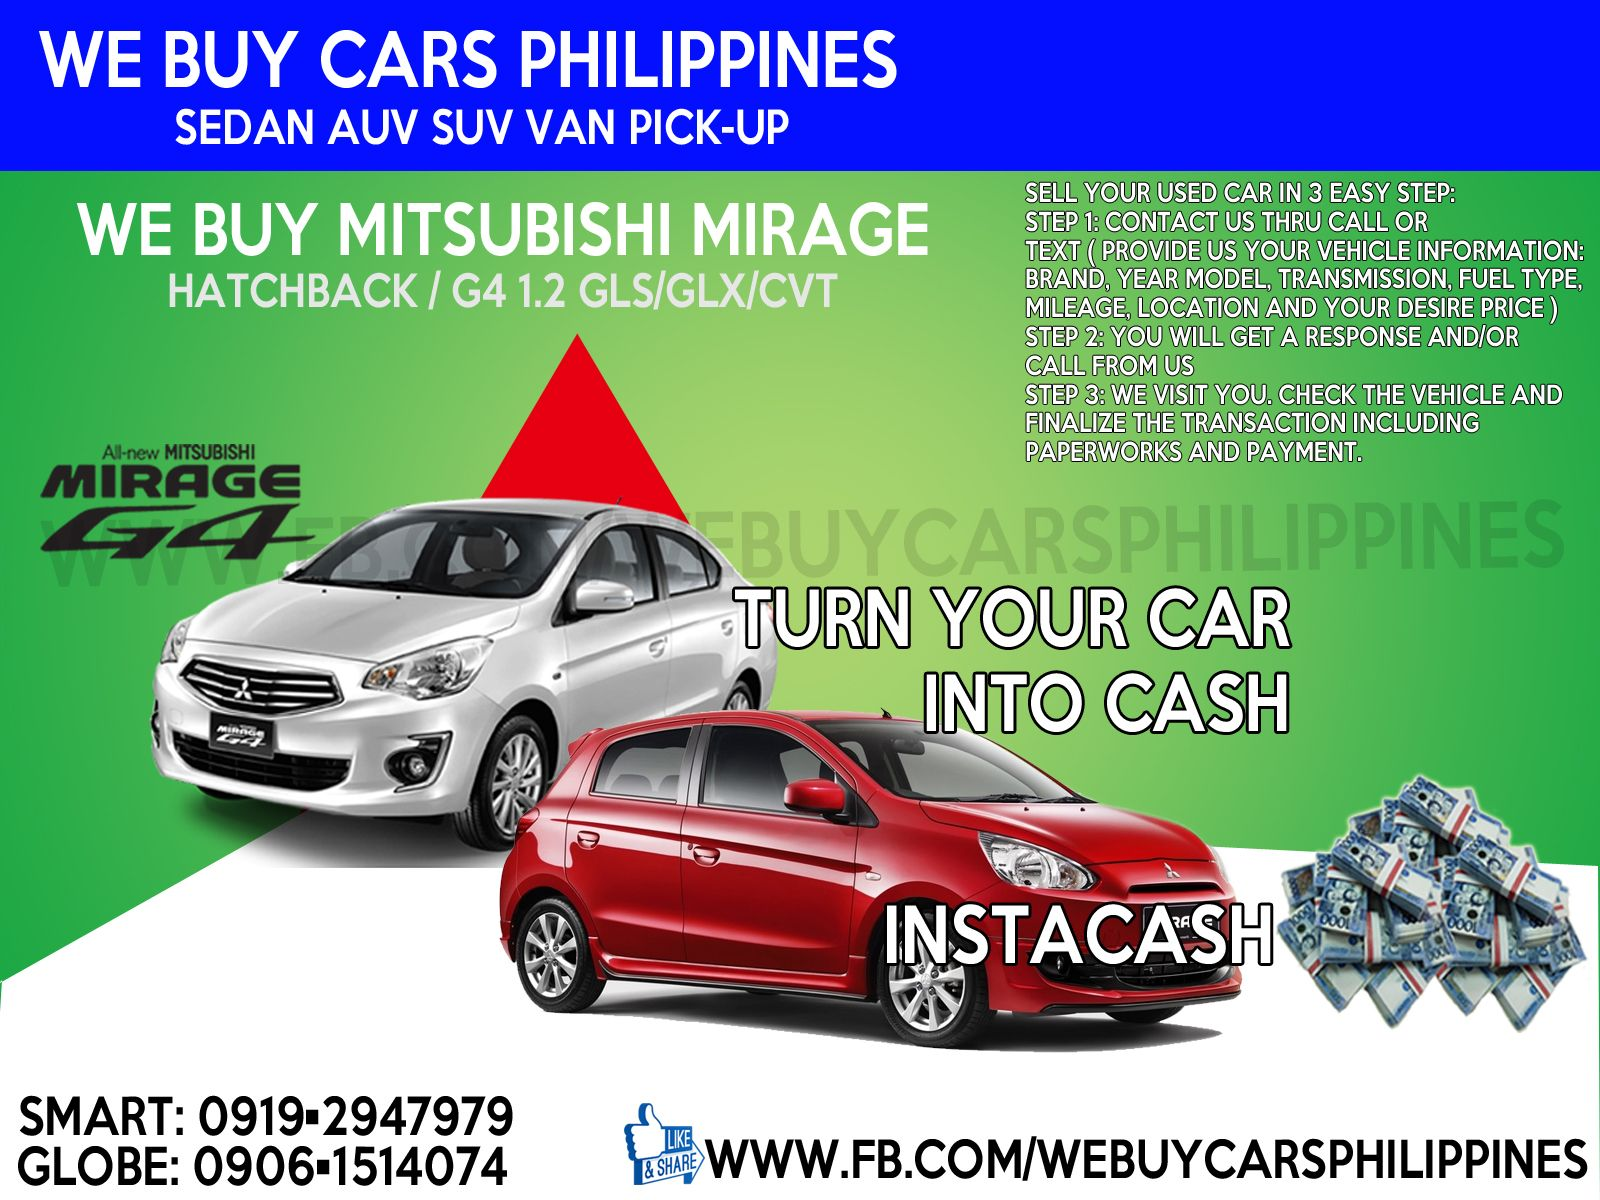 We Buy Used Mitsubishi Mirage Philippines Mirage Glx 1 2 Mt Mirage Glx 1 2 Cvt Mirage Gls 1 2 Mt Mir Mitsubishi Mirage Car For Teens Subaru Outback For Sale